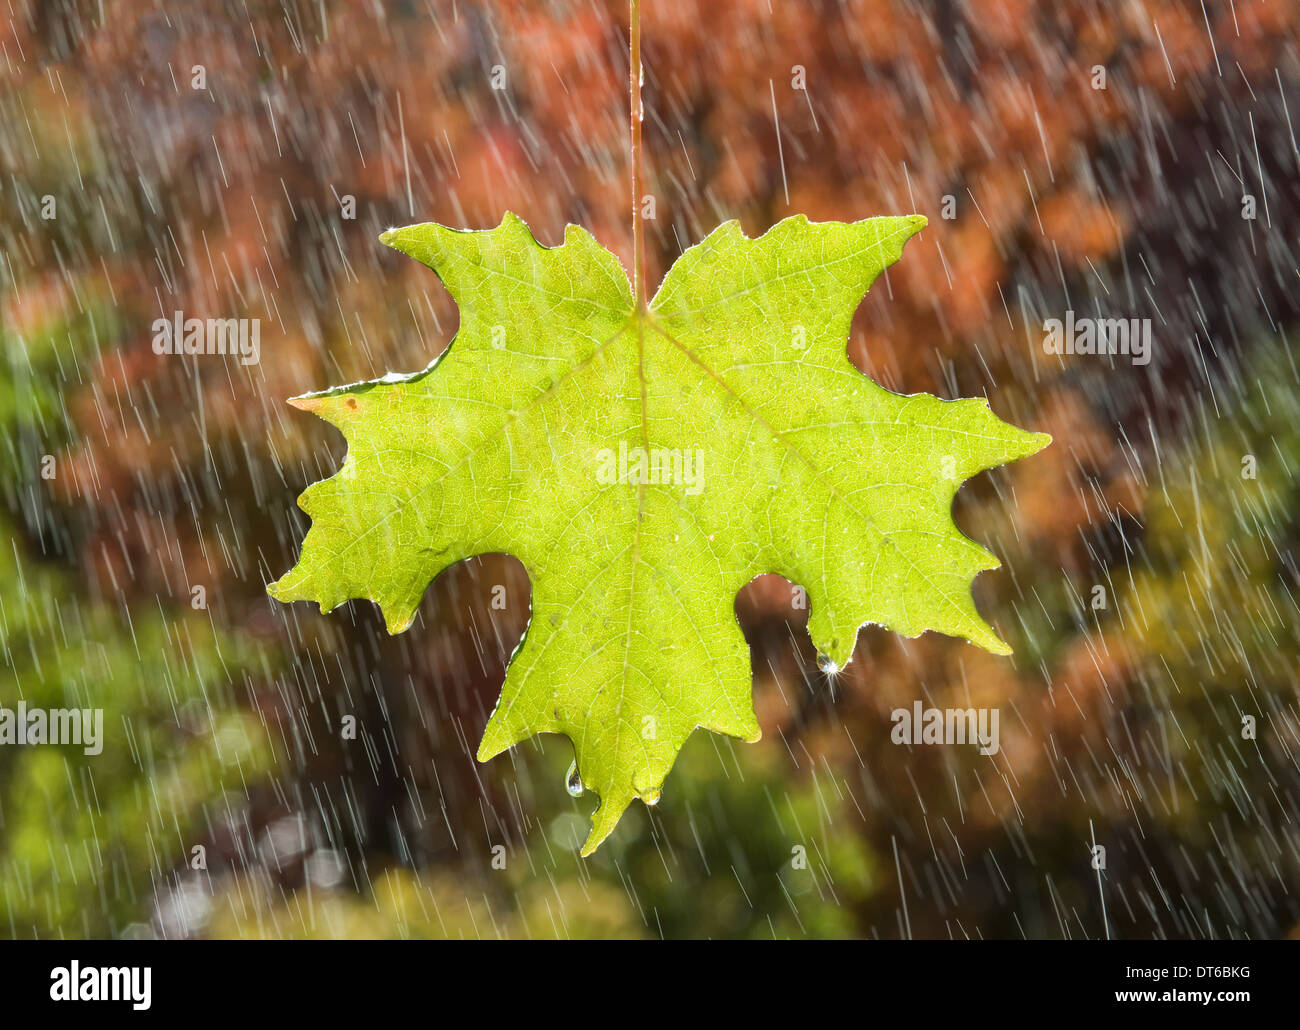 A vivid green maple leaf glistening in the rain, against a background of brown autumn leaves. - Stock Image